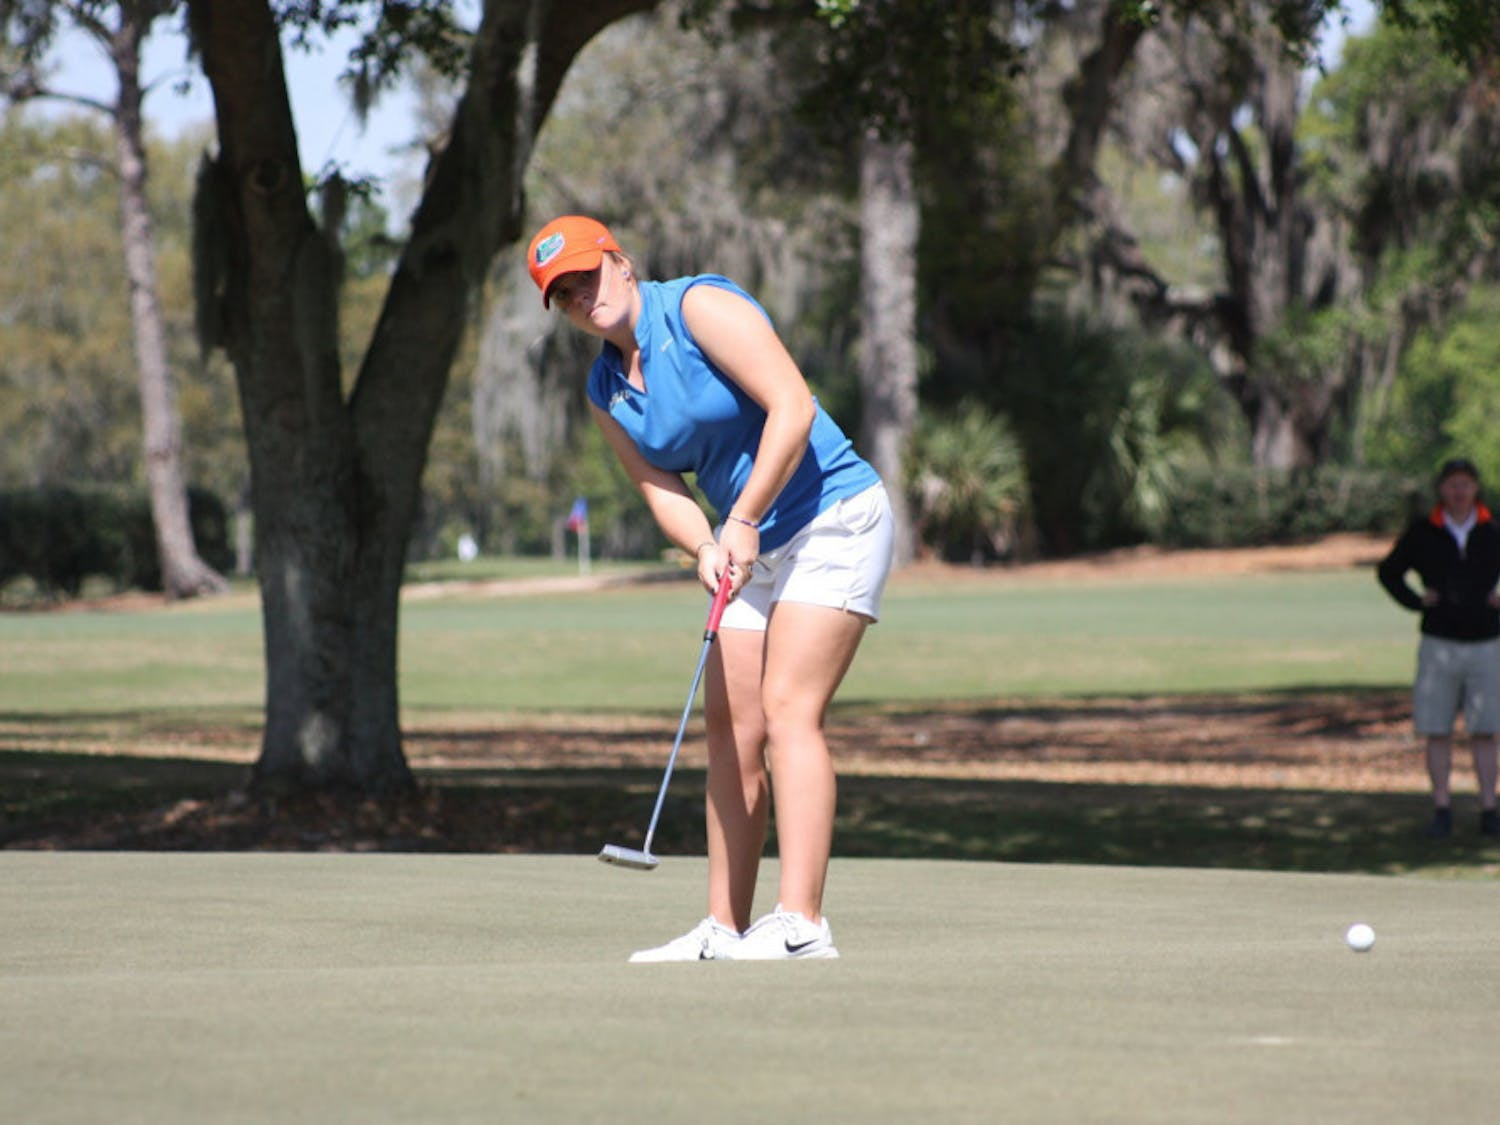 Junior Marta Perez leads the Gators with four top-10 and six top-25 finishes this season. Her 72.8 stroke average is the best mark on the team.